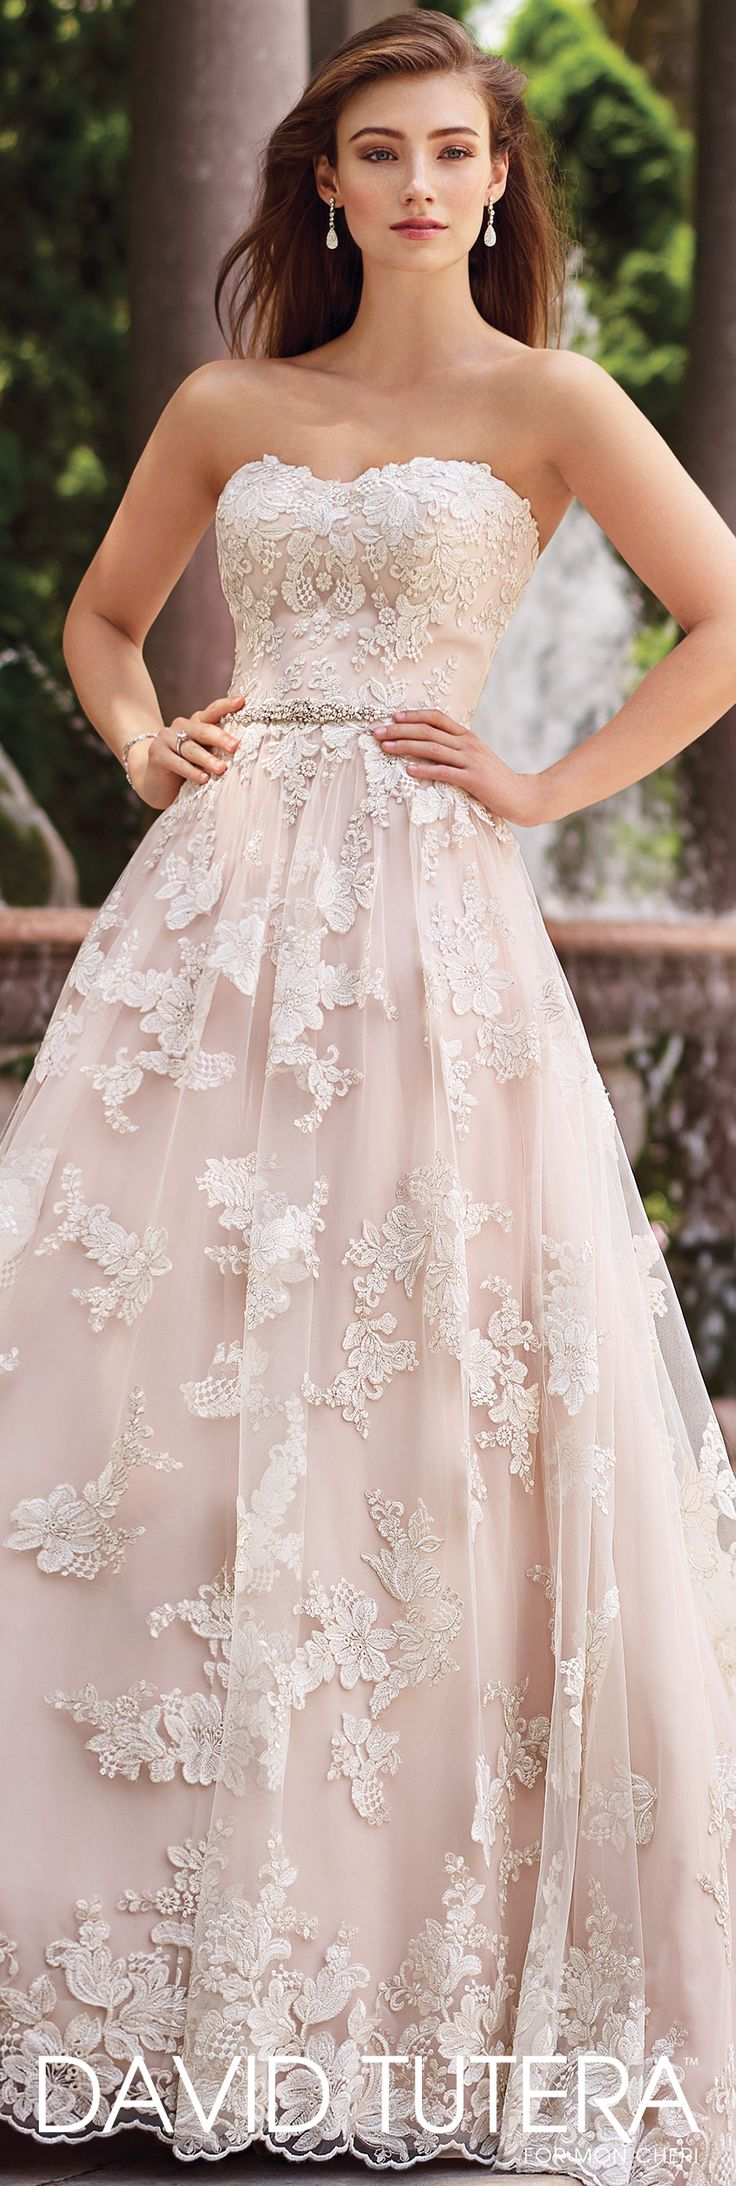 1000  ideas about Blush Pink Wedding Dress on Pinterest  Blush ...